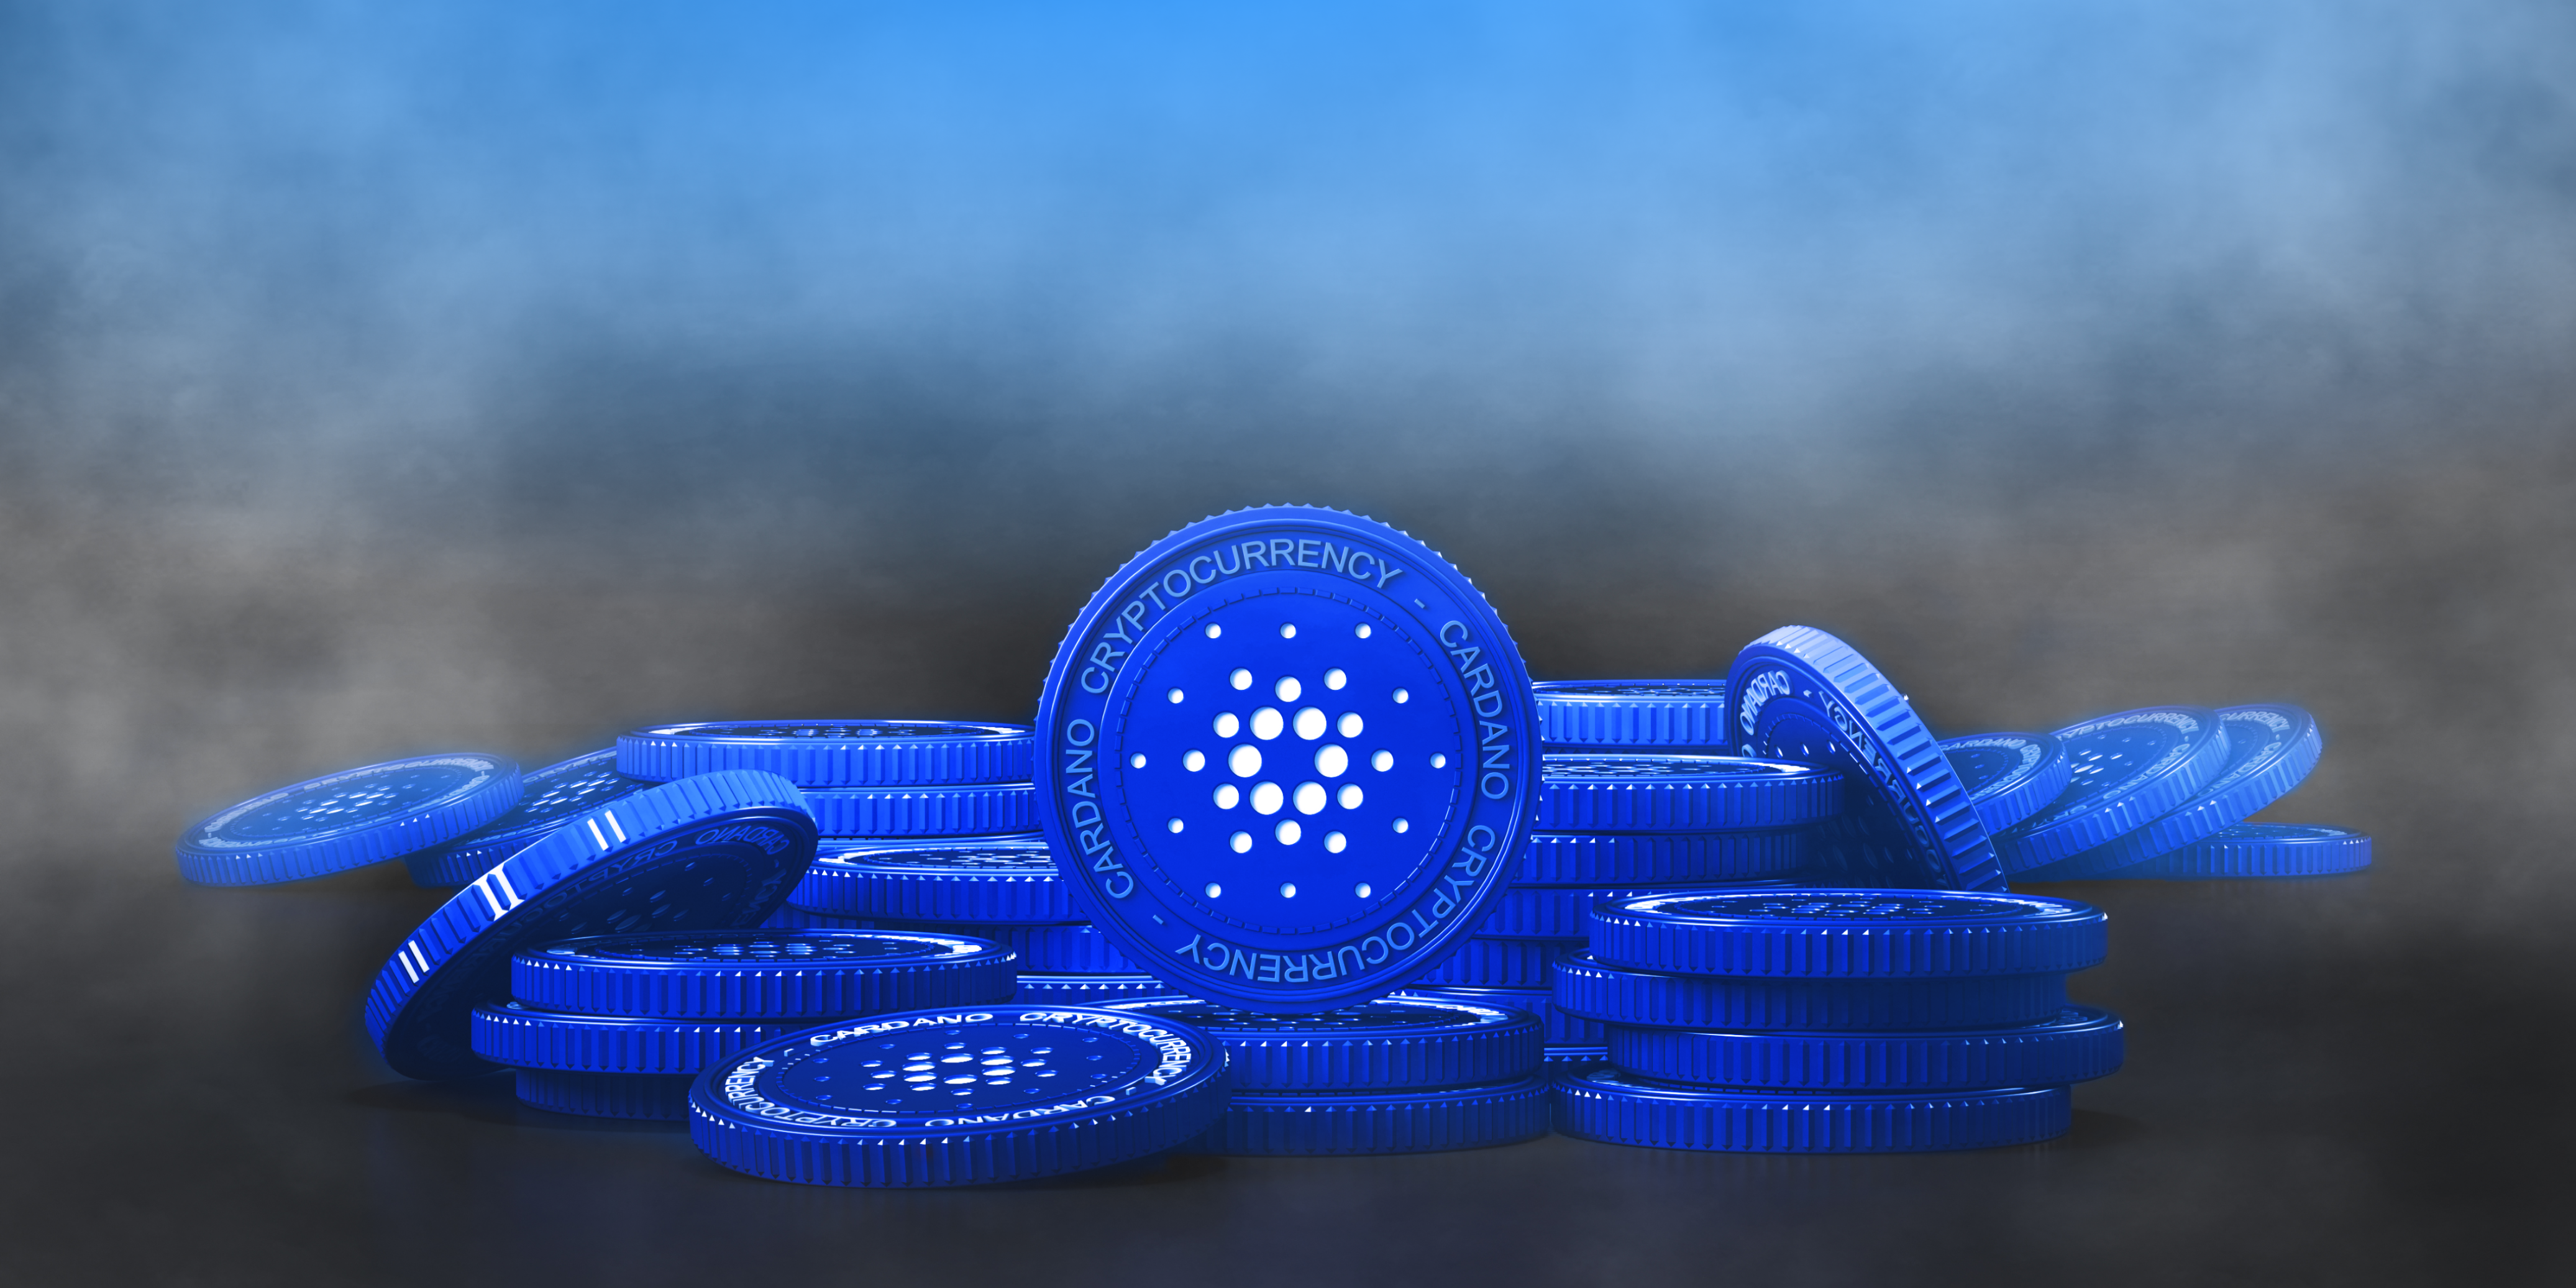 Cardano (ADA) neemt BNB over als 3e grootste cryptocurrency